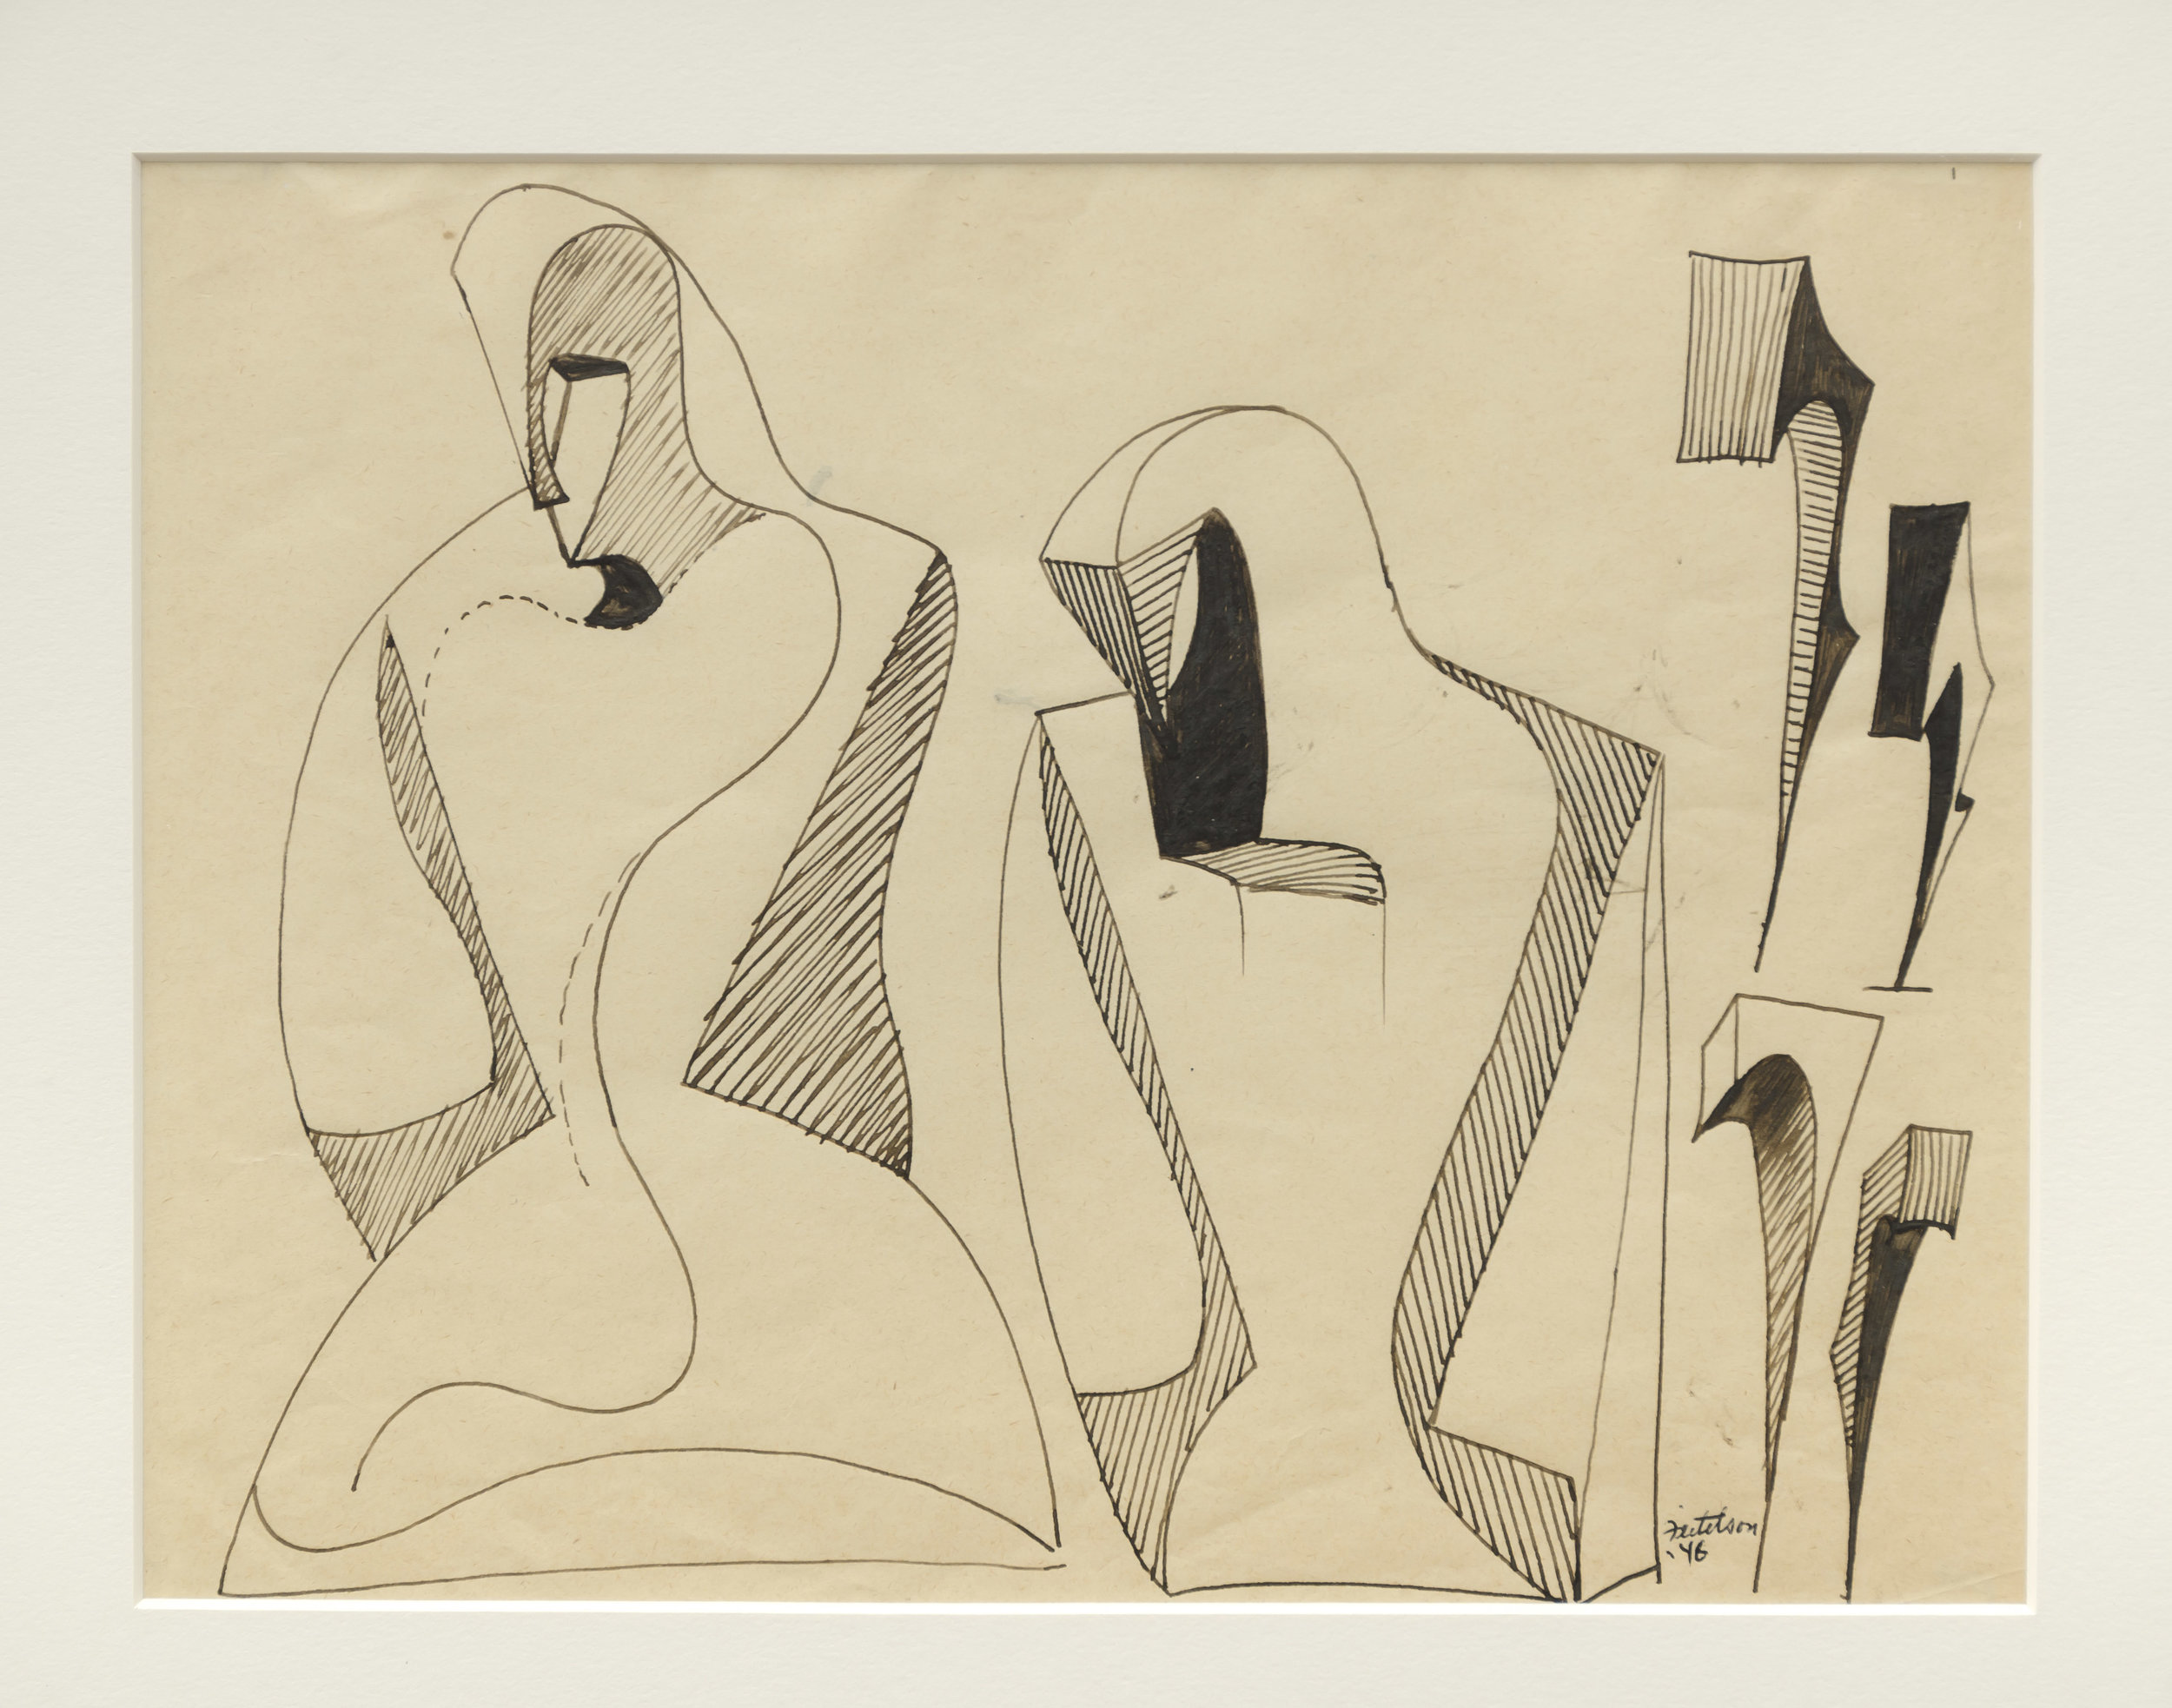 Lorser Feitelson (1898-1978)   Figure Evolving Into Magical Forms , 1946 ink on paper  8 1/2 x 11 inches; 21.6 x 27.9 centimeters